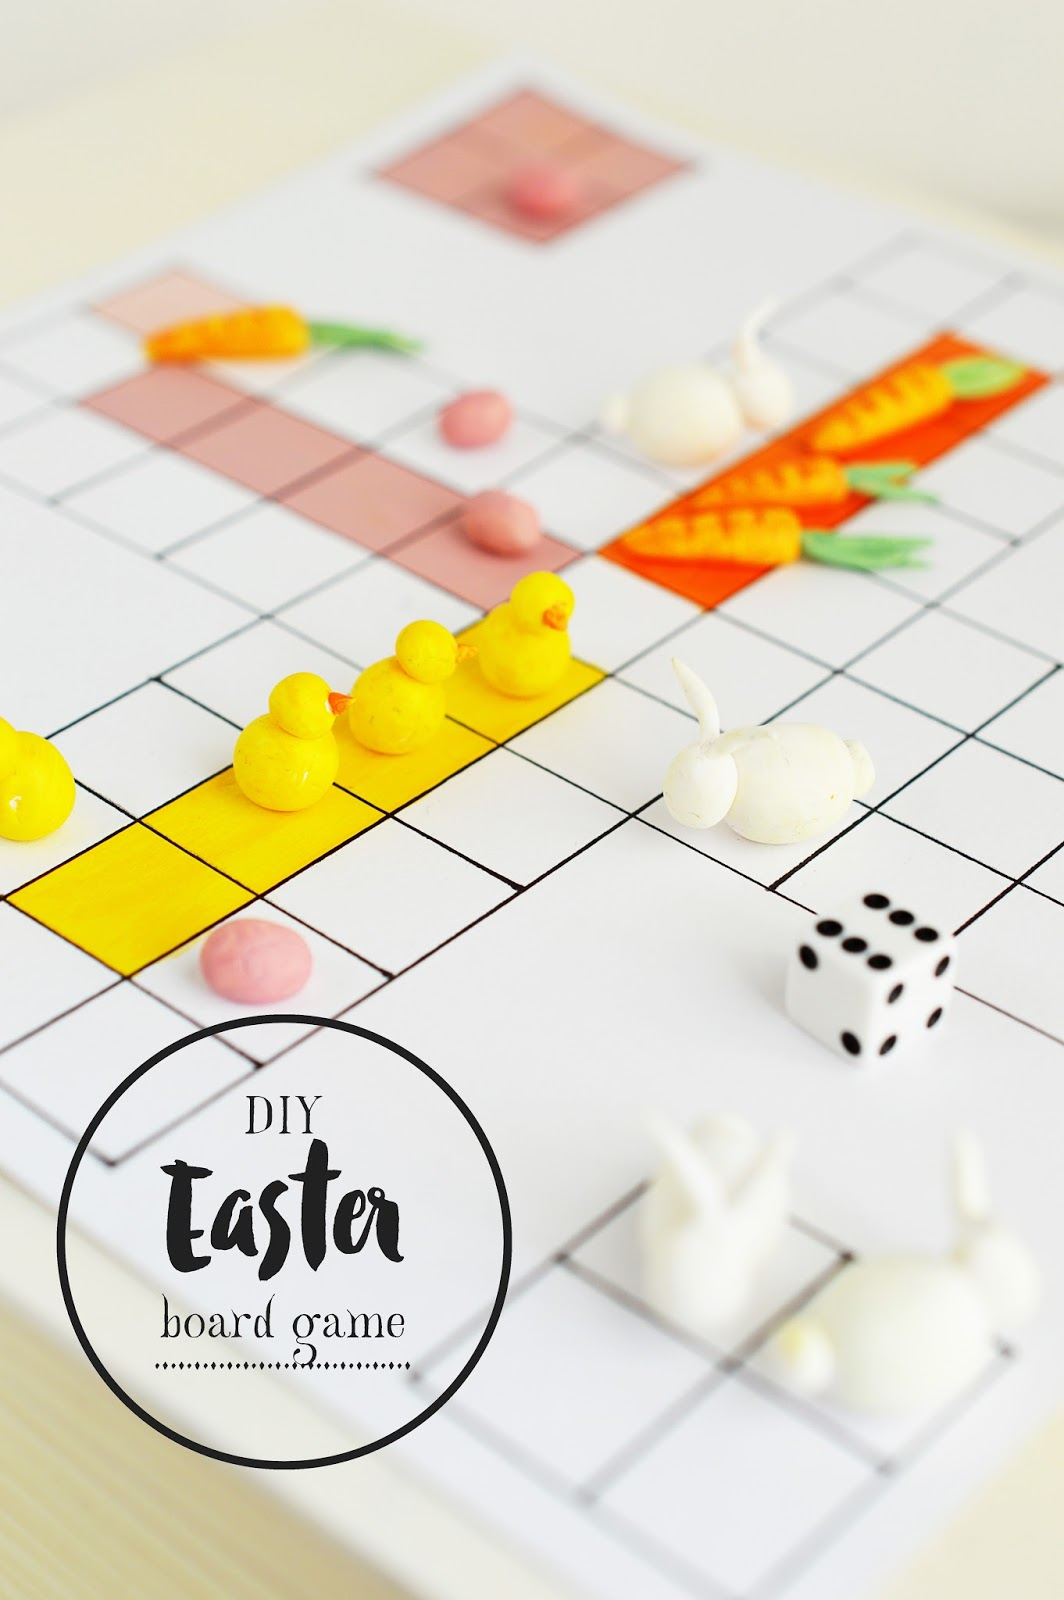 Bunny, don't you worry! | DIY EASTER BOARD GAME